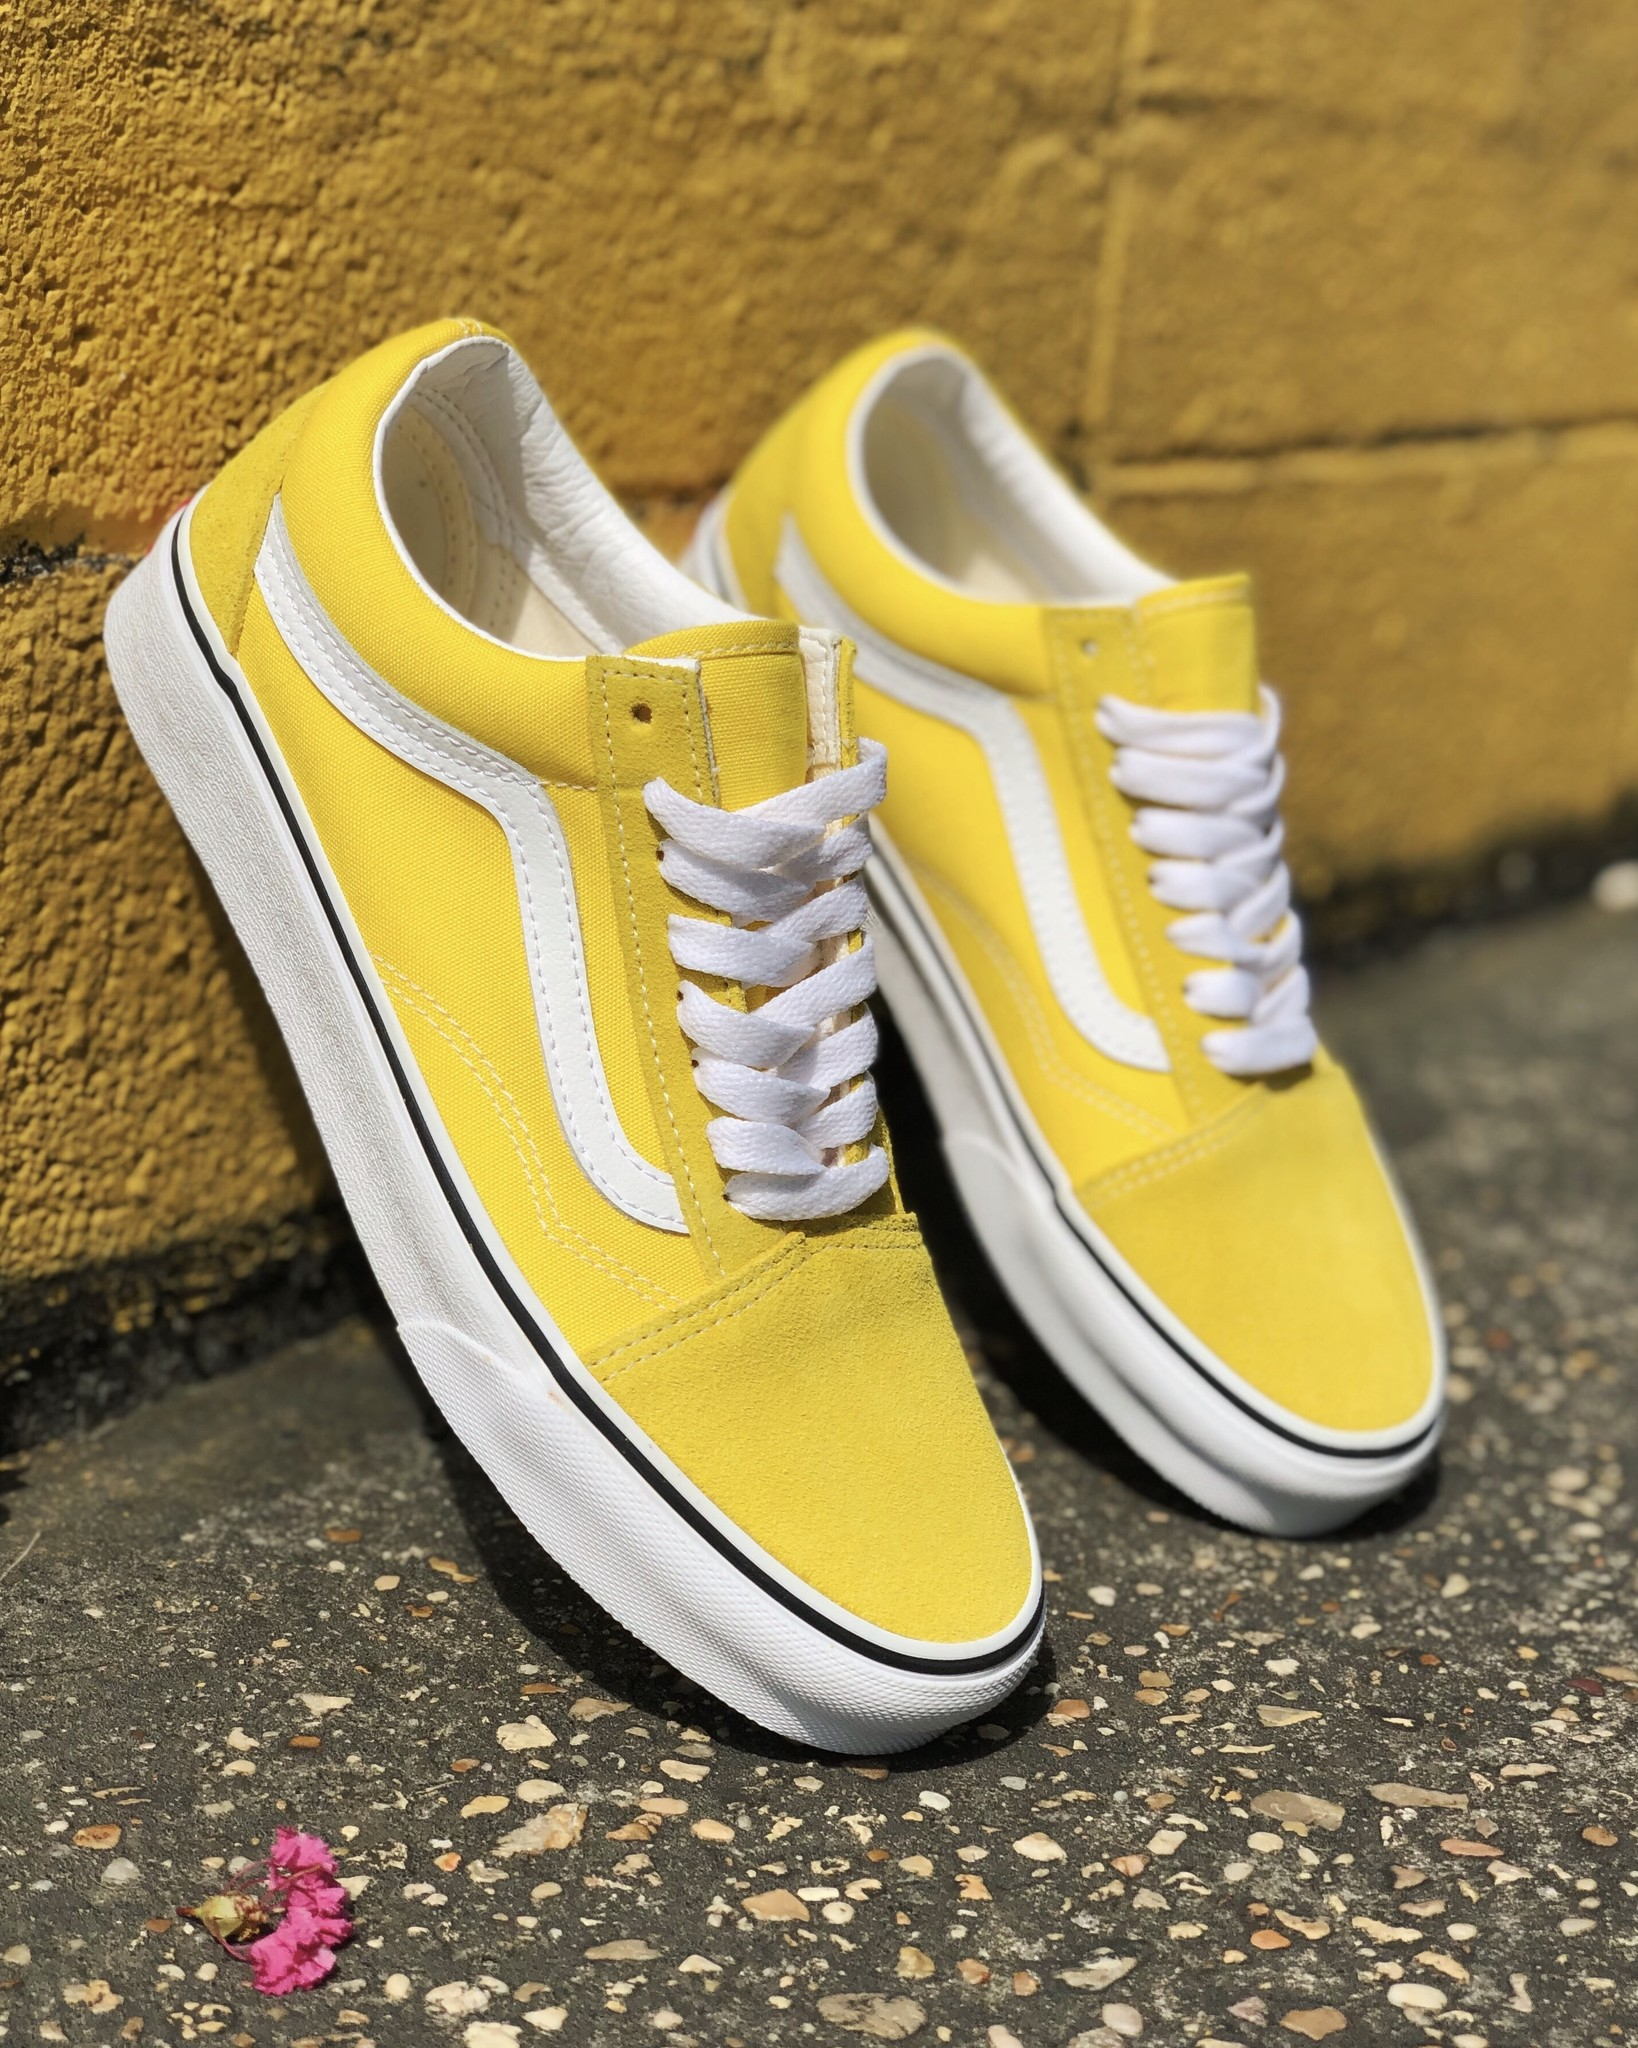 Vans Old Skool Vibrant Yellow